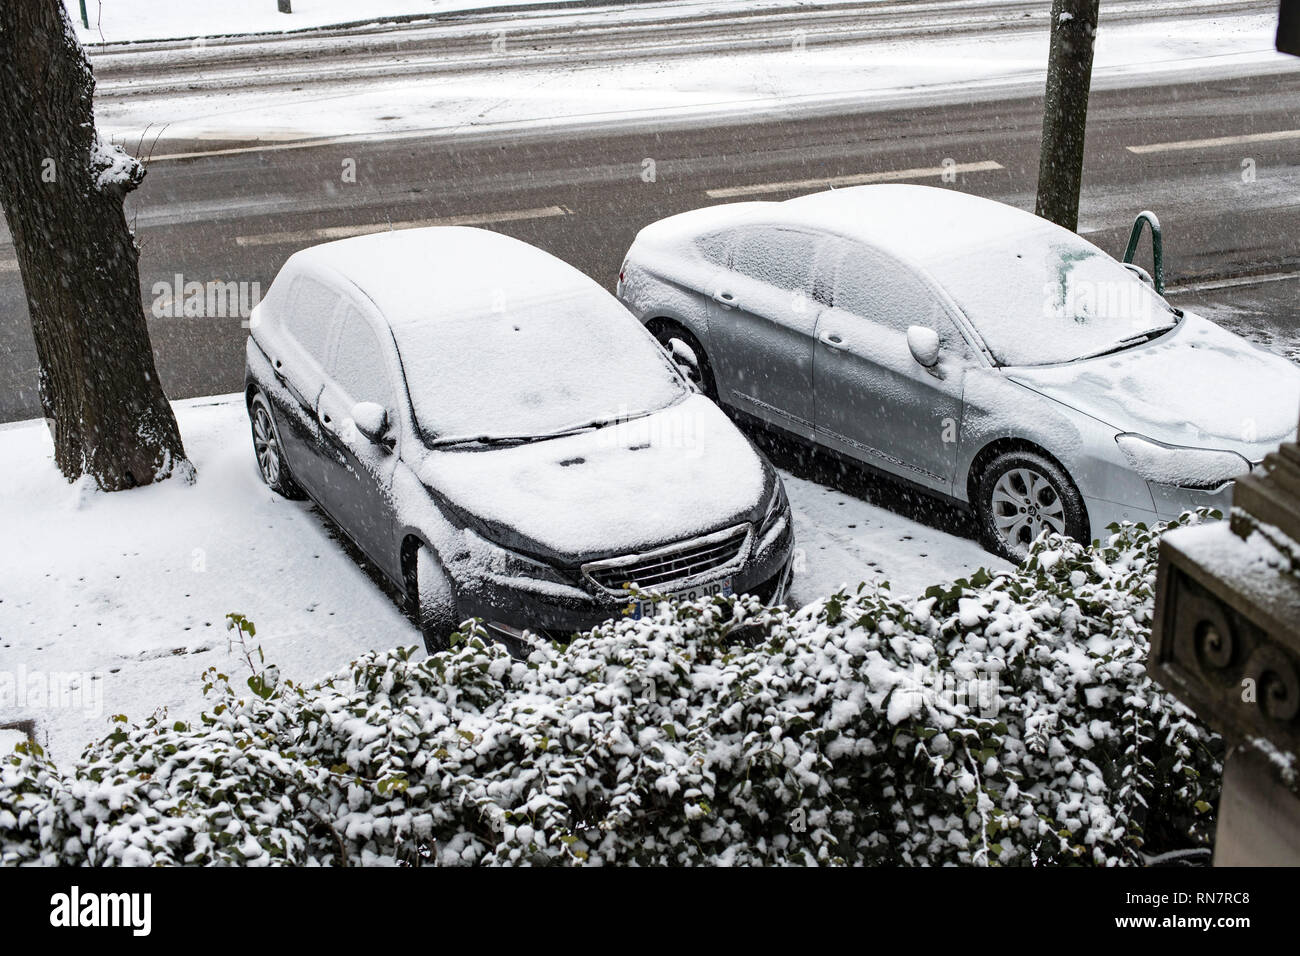 Strasbourg, Alsace, France, snowy parked cars on pavement, - Stock Image